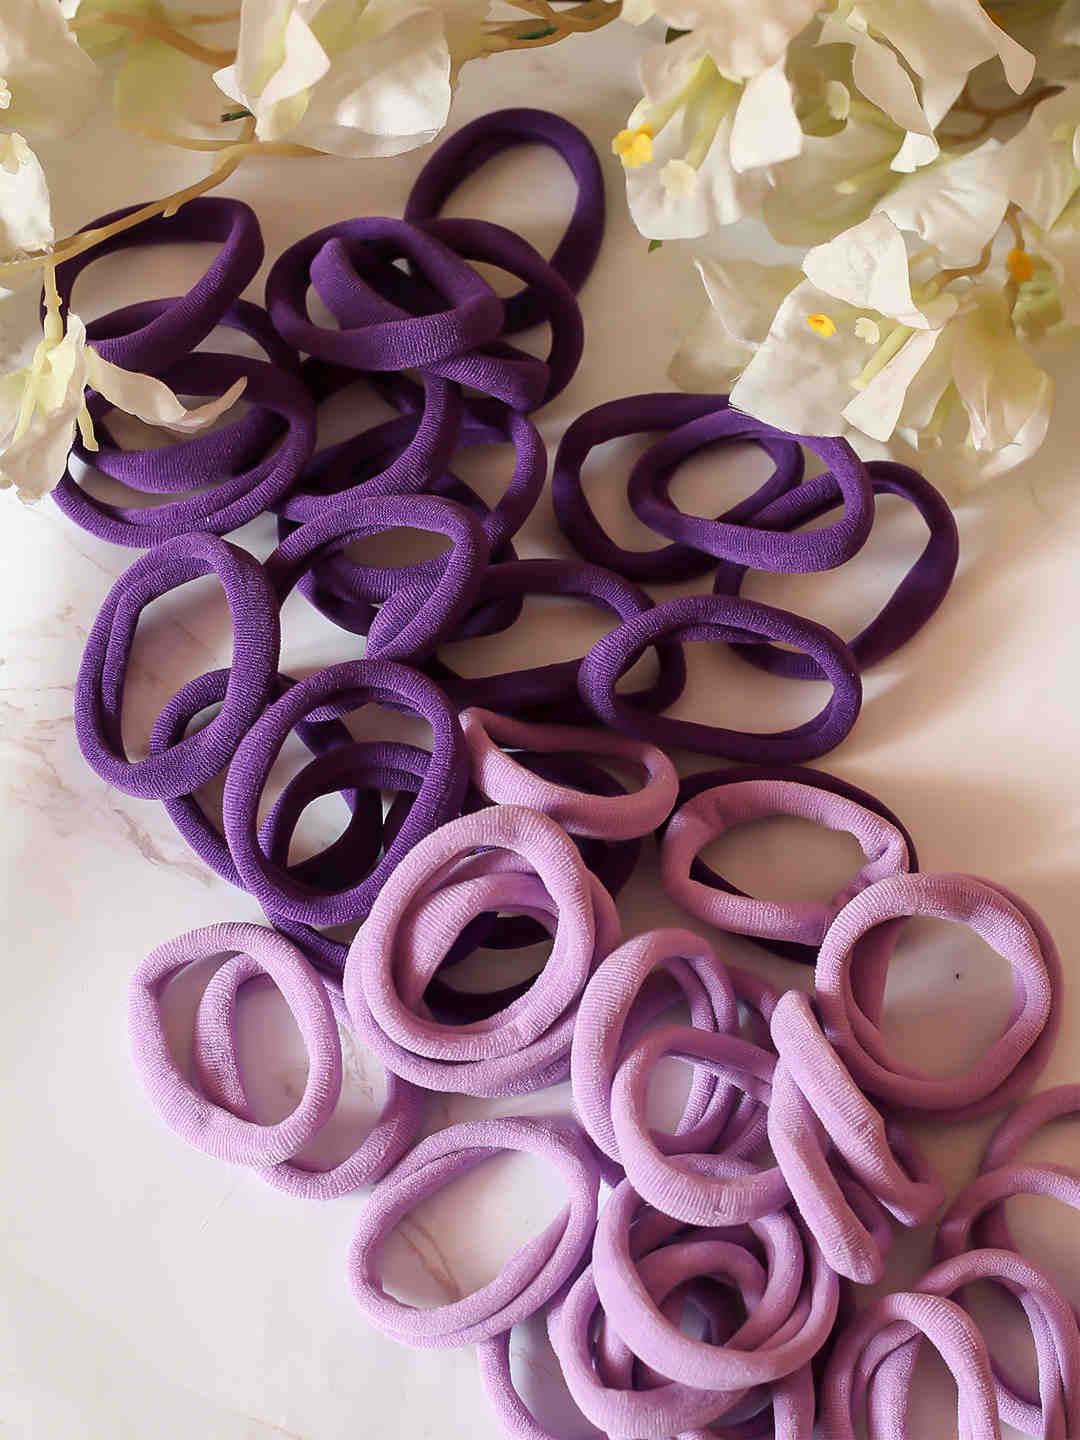 Bellofox Ombre Hairtie Stack - Pack of 50 Hair Accessories